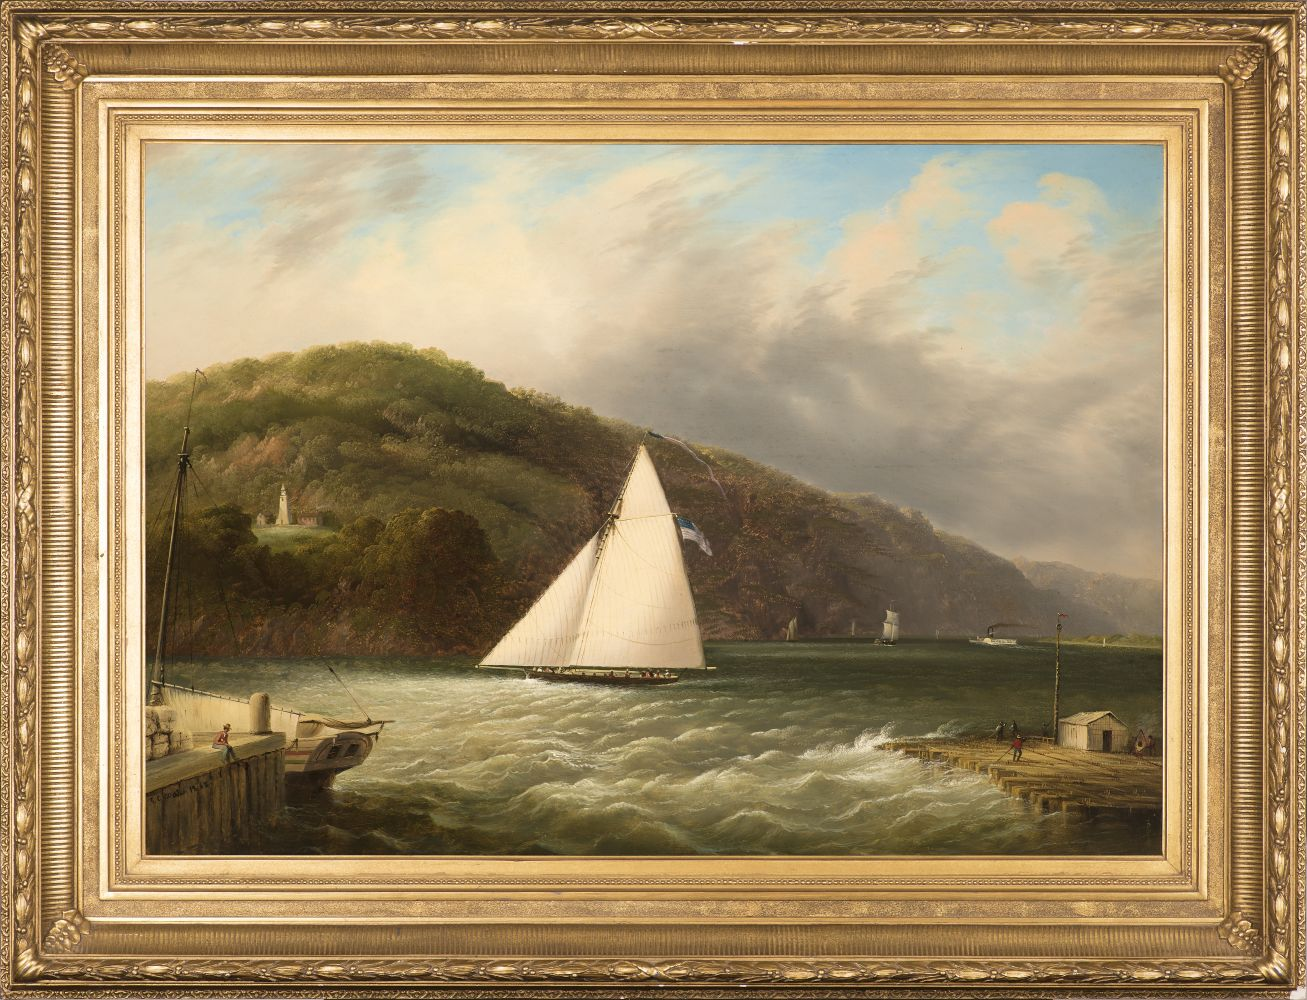 Edmund C. Coates (1816–1871), Yachting on the Hudson, 1863, oil on canvas, 24 x 34 in., signed and dated lower left: E.C. Coates 1863 (framed)